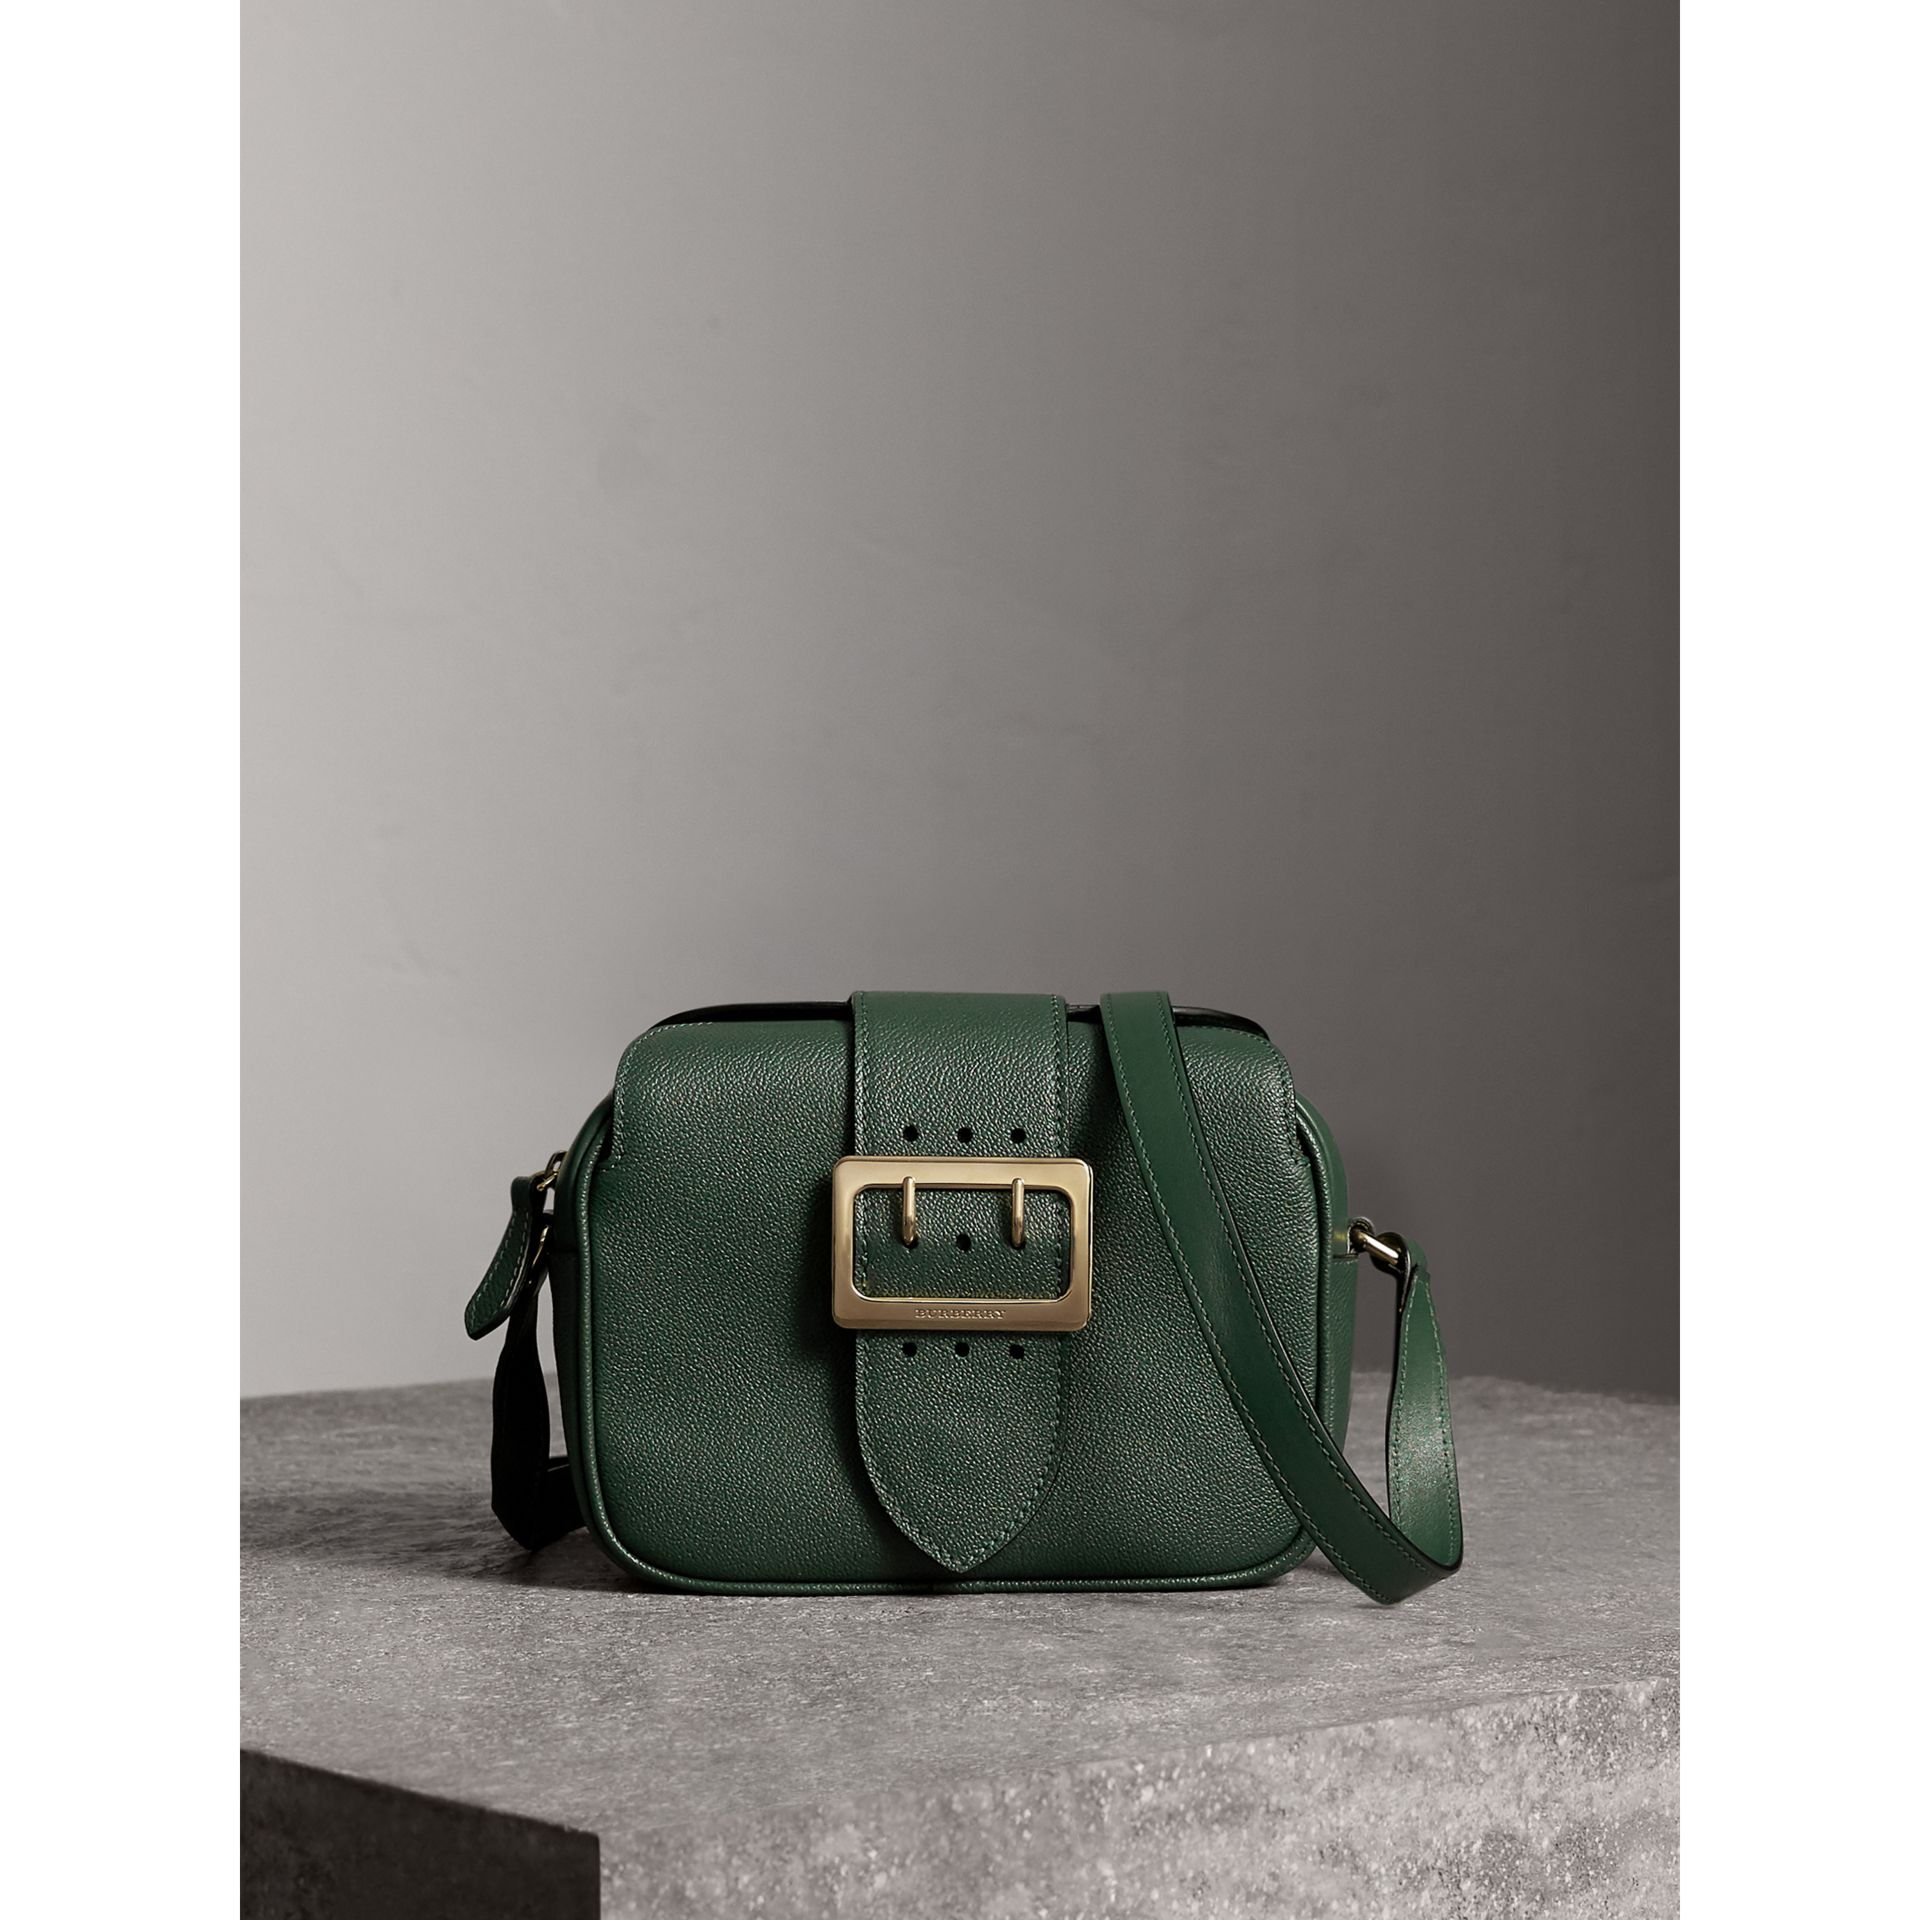 bdedddaf956a Burberry The Small Buckle Crossbody Bag In Leather In Sea Green ...